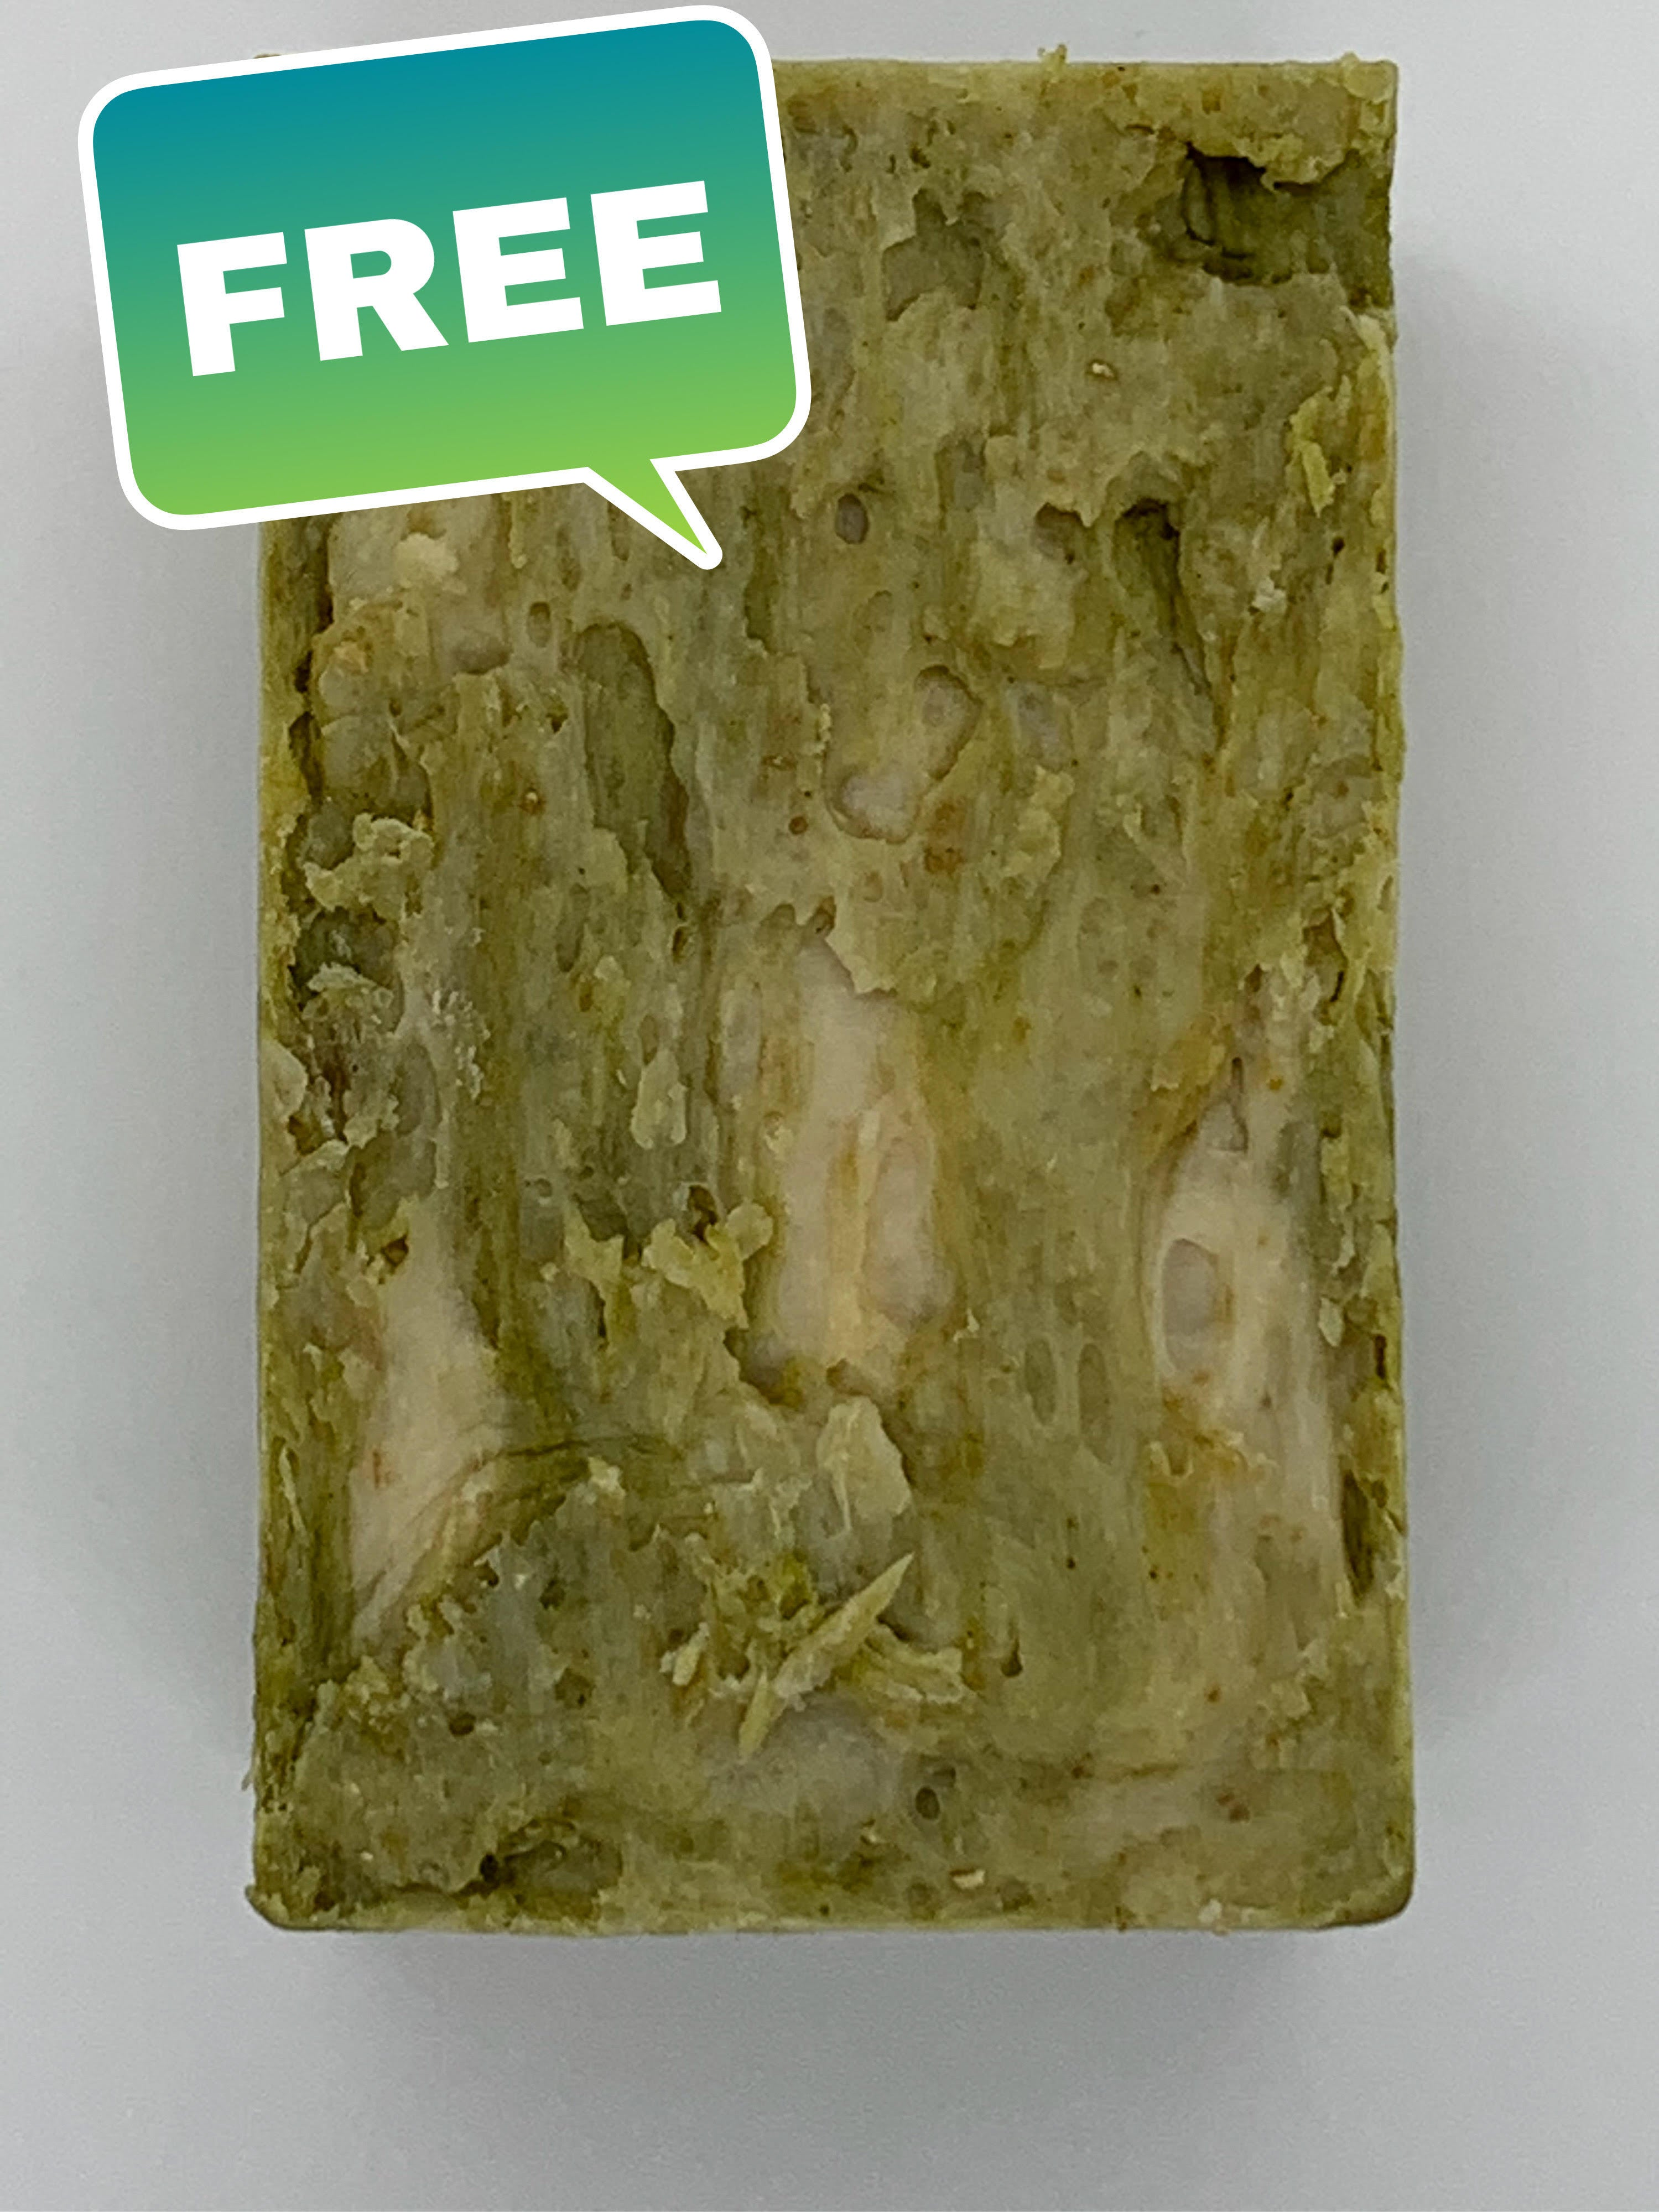 Hot Process Soap Set (8) 7oz Bars! Get Free Irish Sea Moss Bar with Set- Fermented Rice Water - Goat Milk - Honey - MSM - Oatmeal! Helps with Acne!